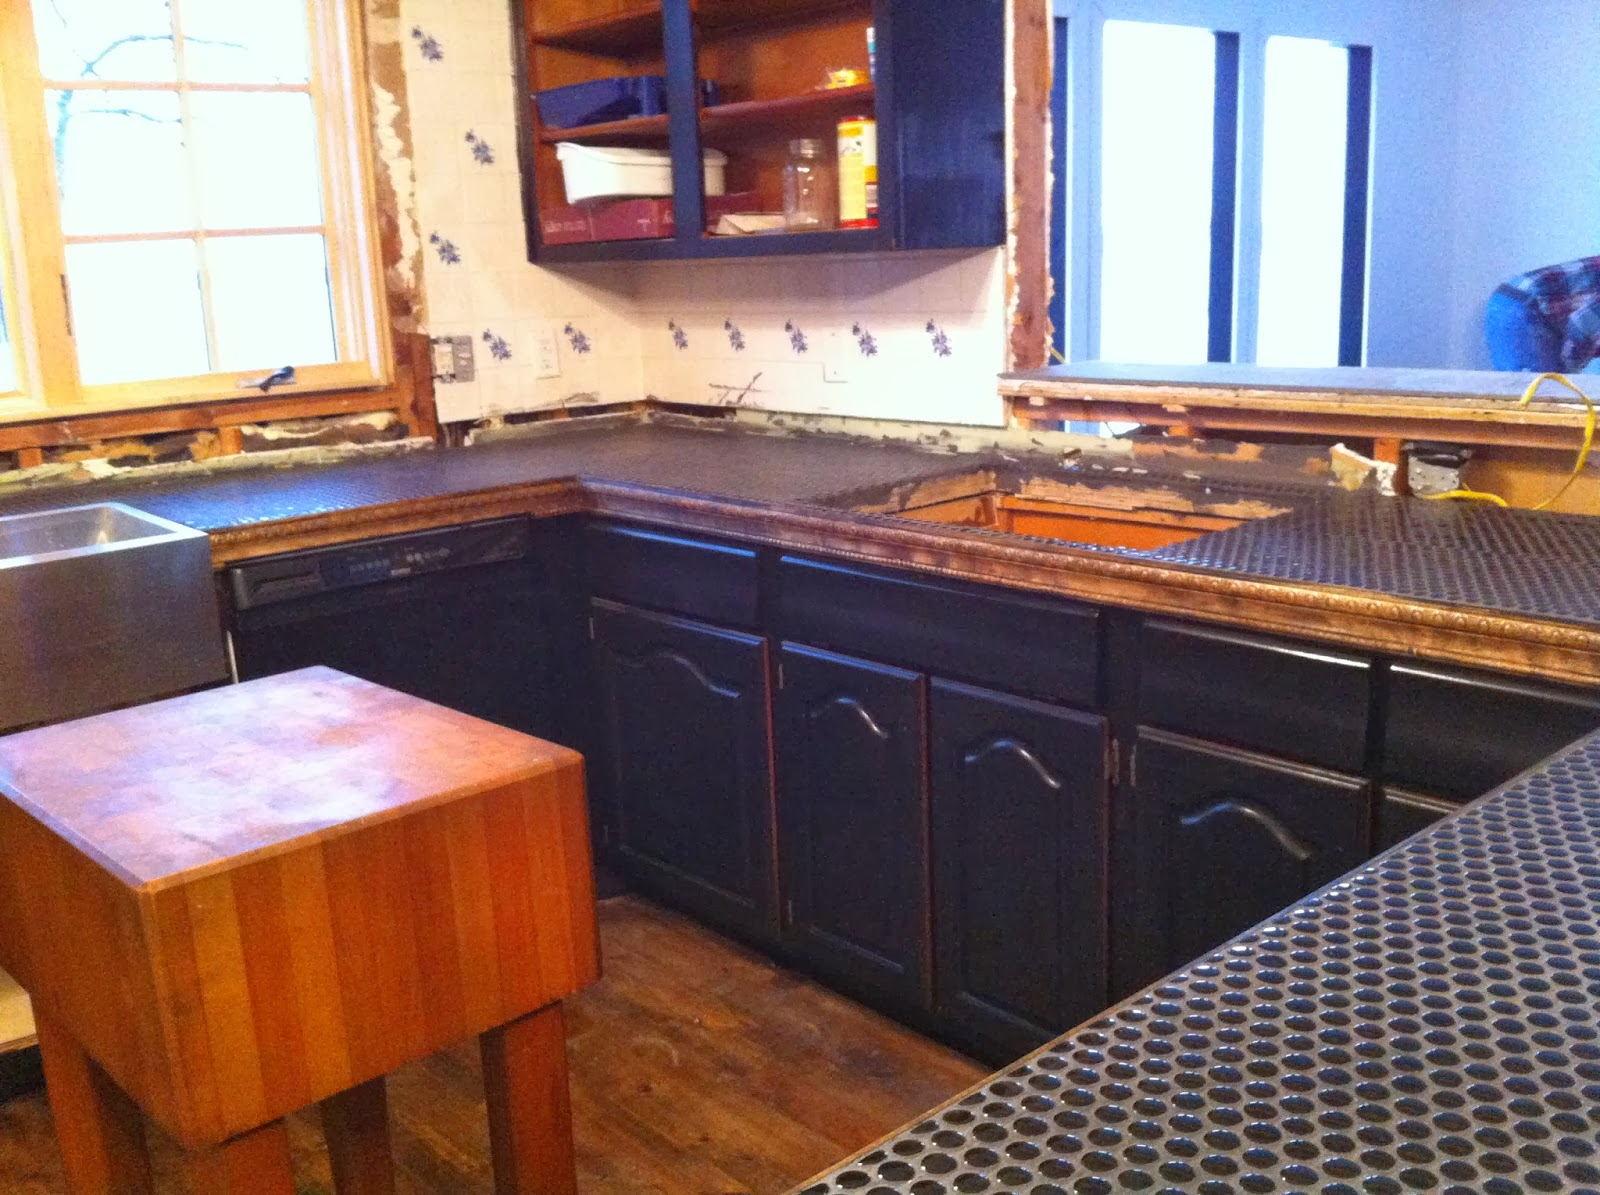 penny tile & slate kitchen counter and farmhouse apron sink install